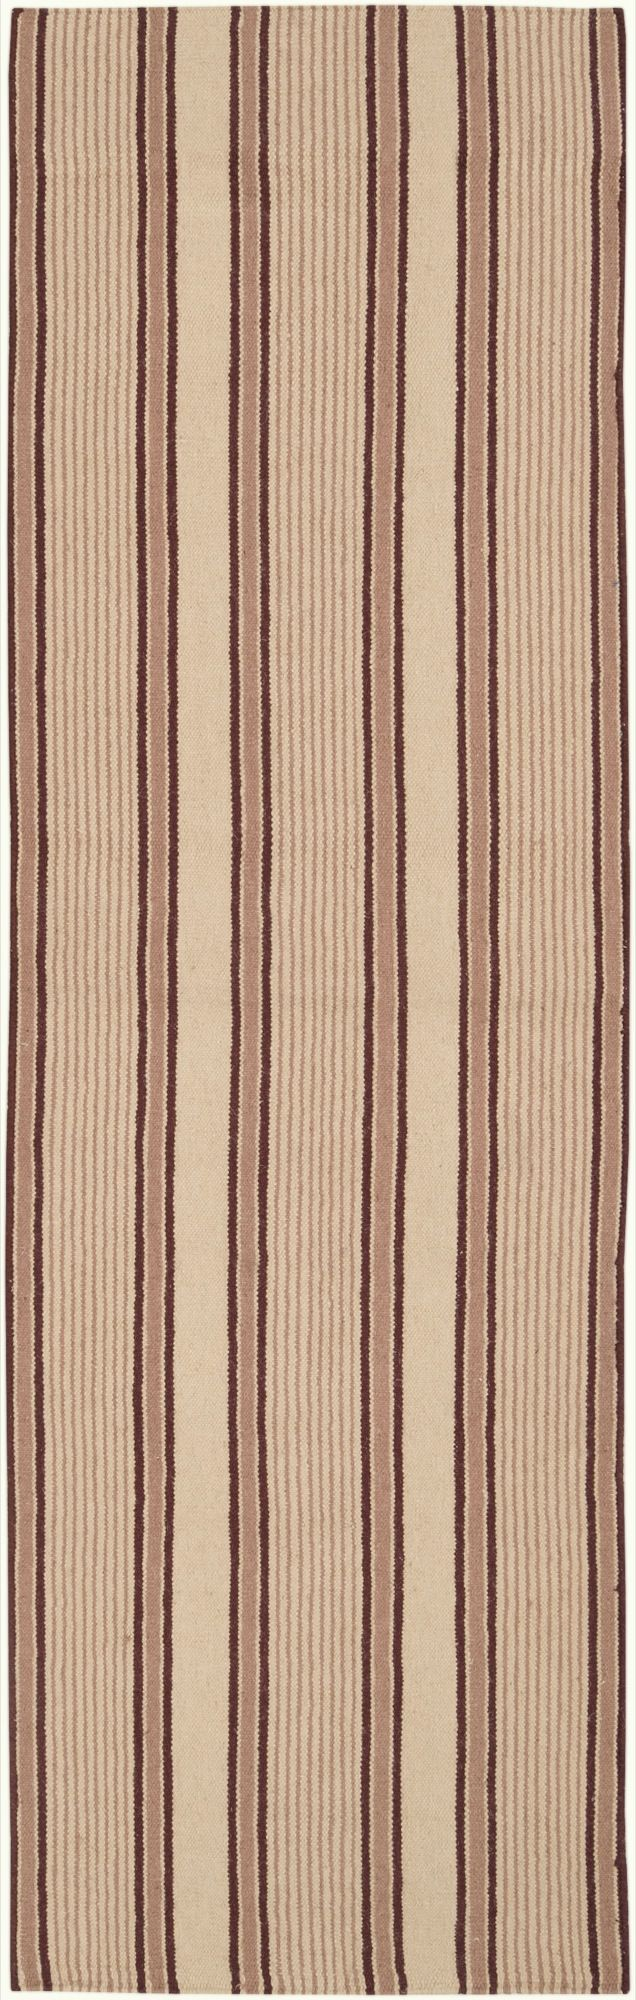 surya farmhouse stripes solid/striped area rug collection